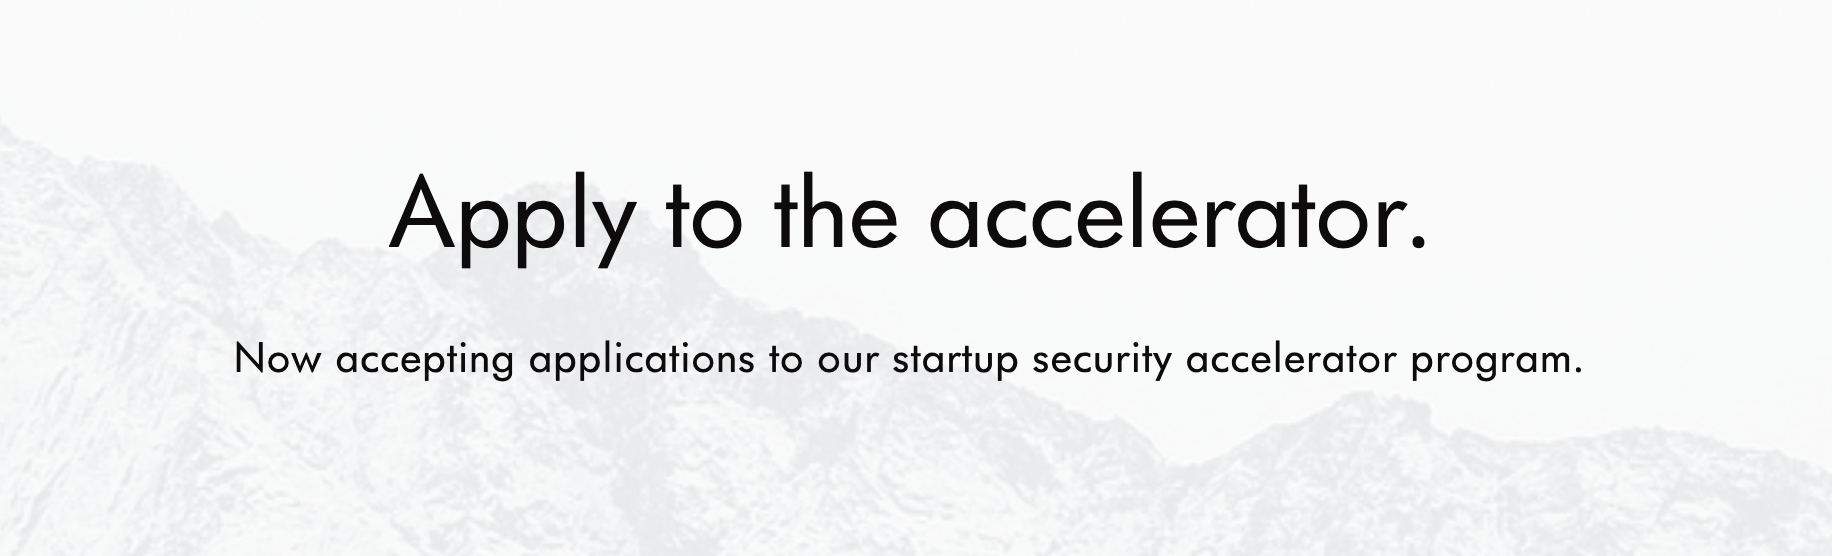 "Text stating, ""Apply to the accelerator, now accepting applications to our startup security accelerator program."""